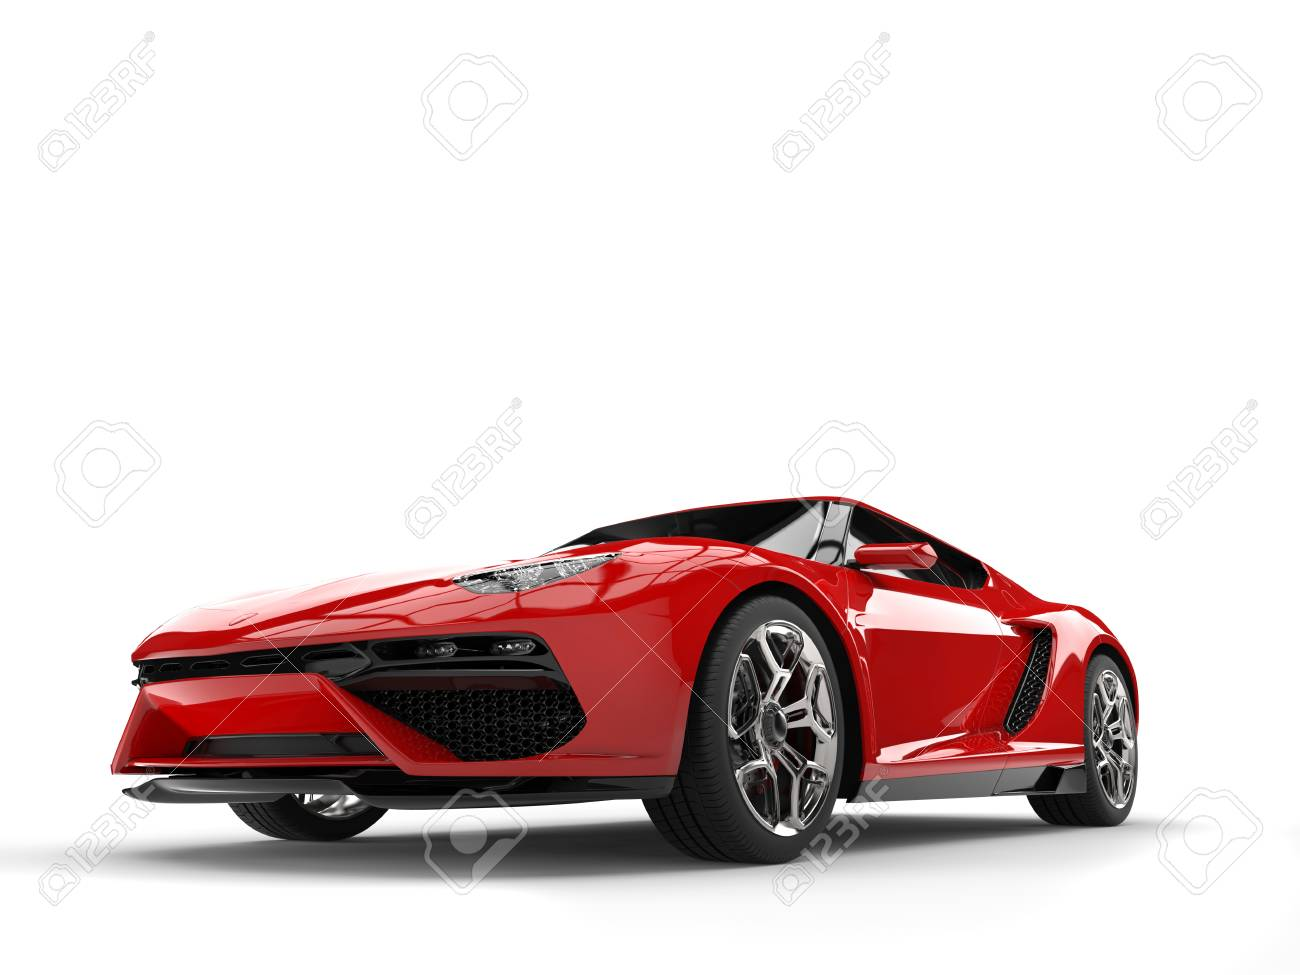 Modern Fire Red Coupe Sports Car Stock Photo Picture And Royalty